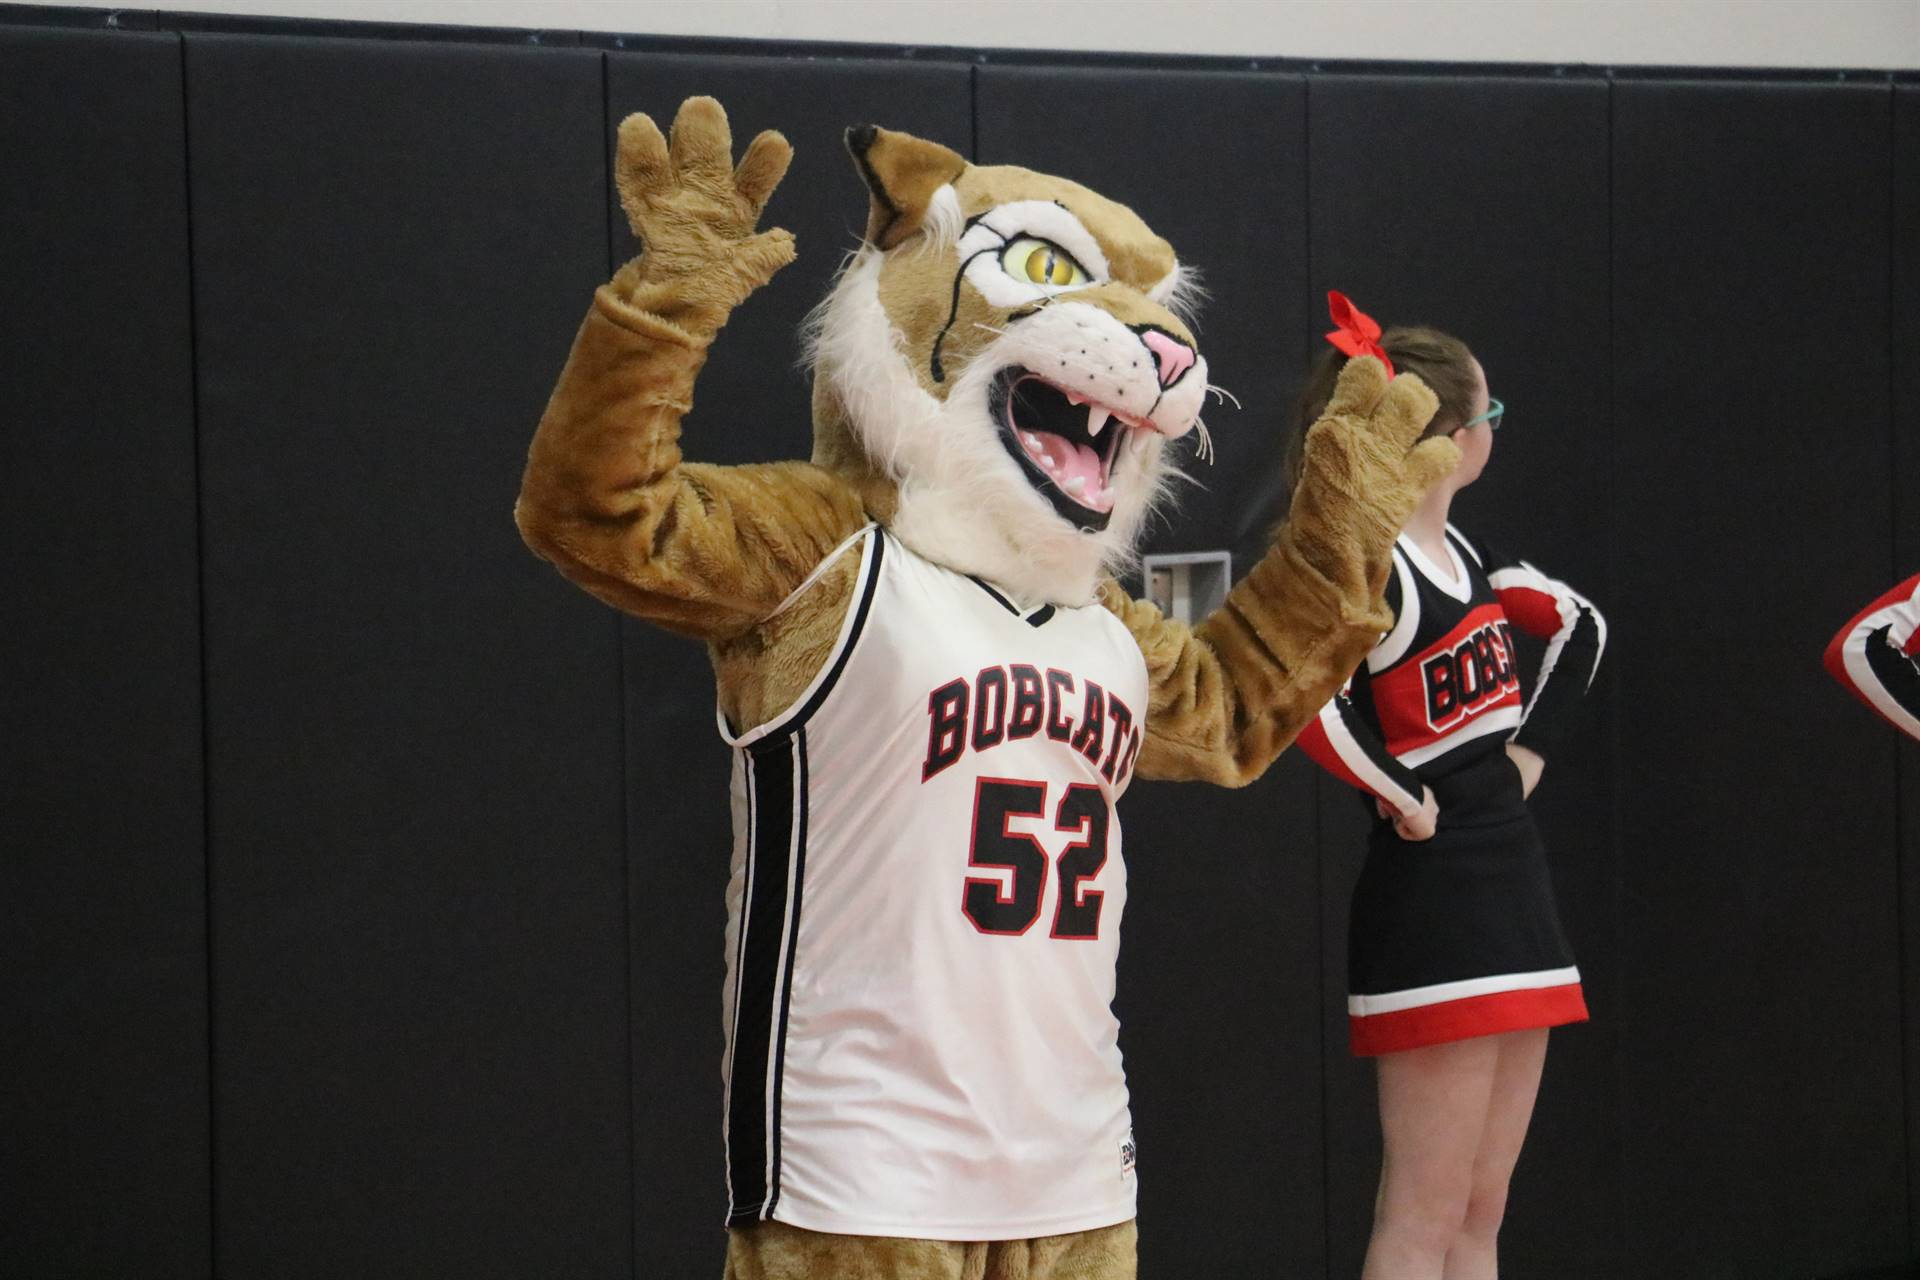 Bruiser the Bobcat